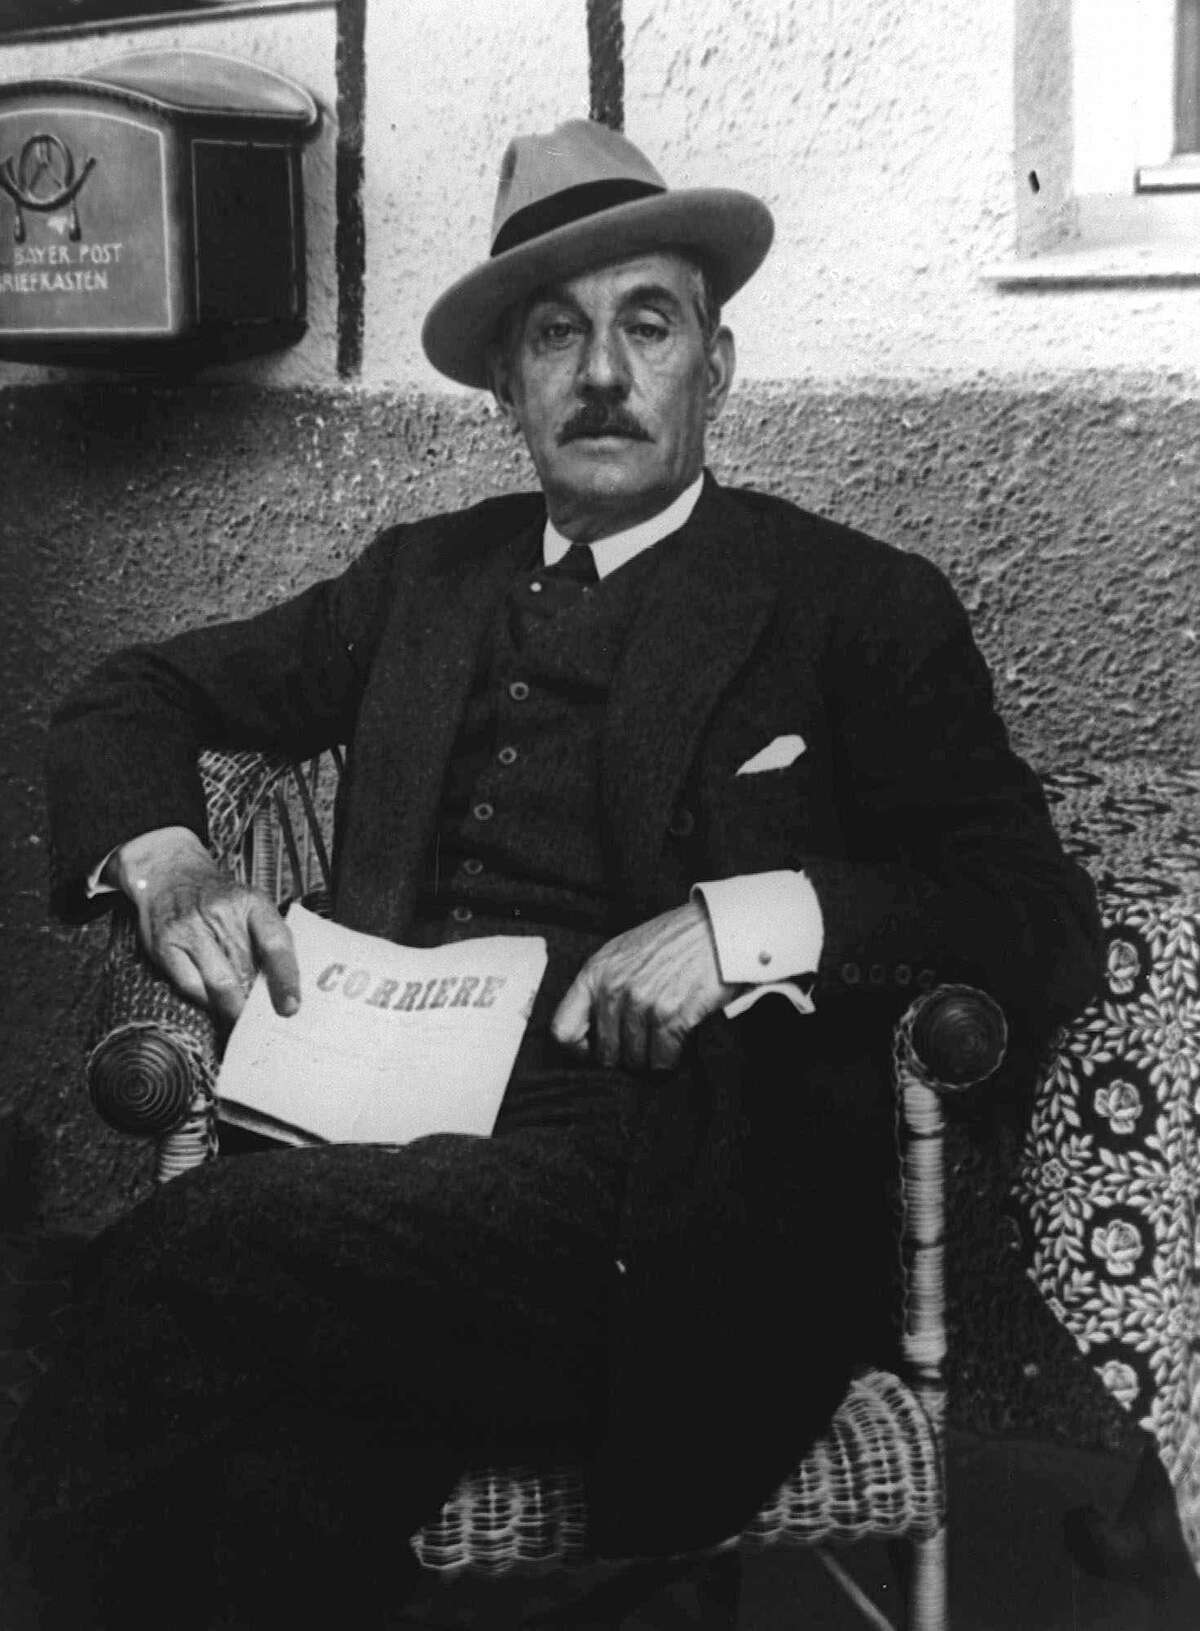 In 1924, Italian composer Giacomo Puccini died in Brussels before he could complete his opera